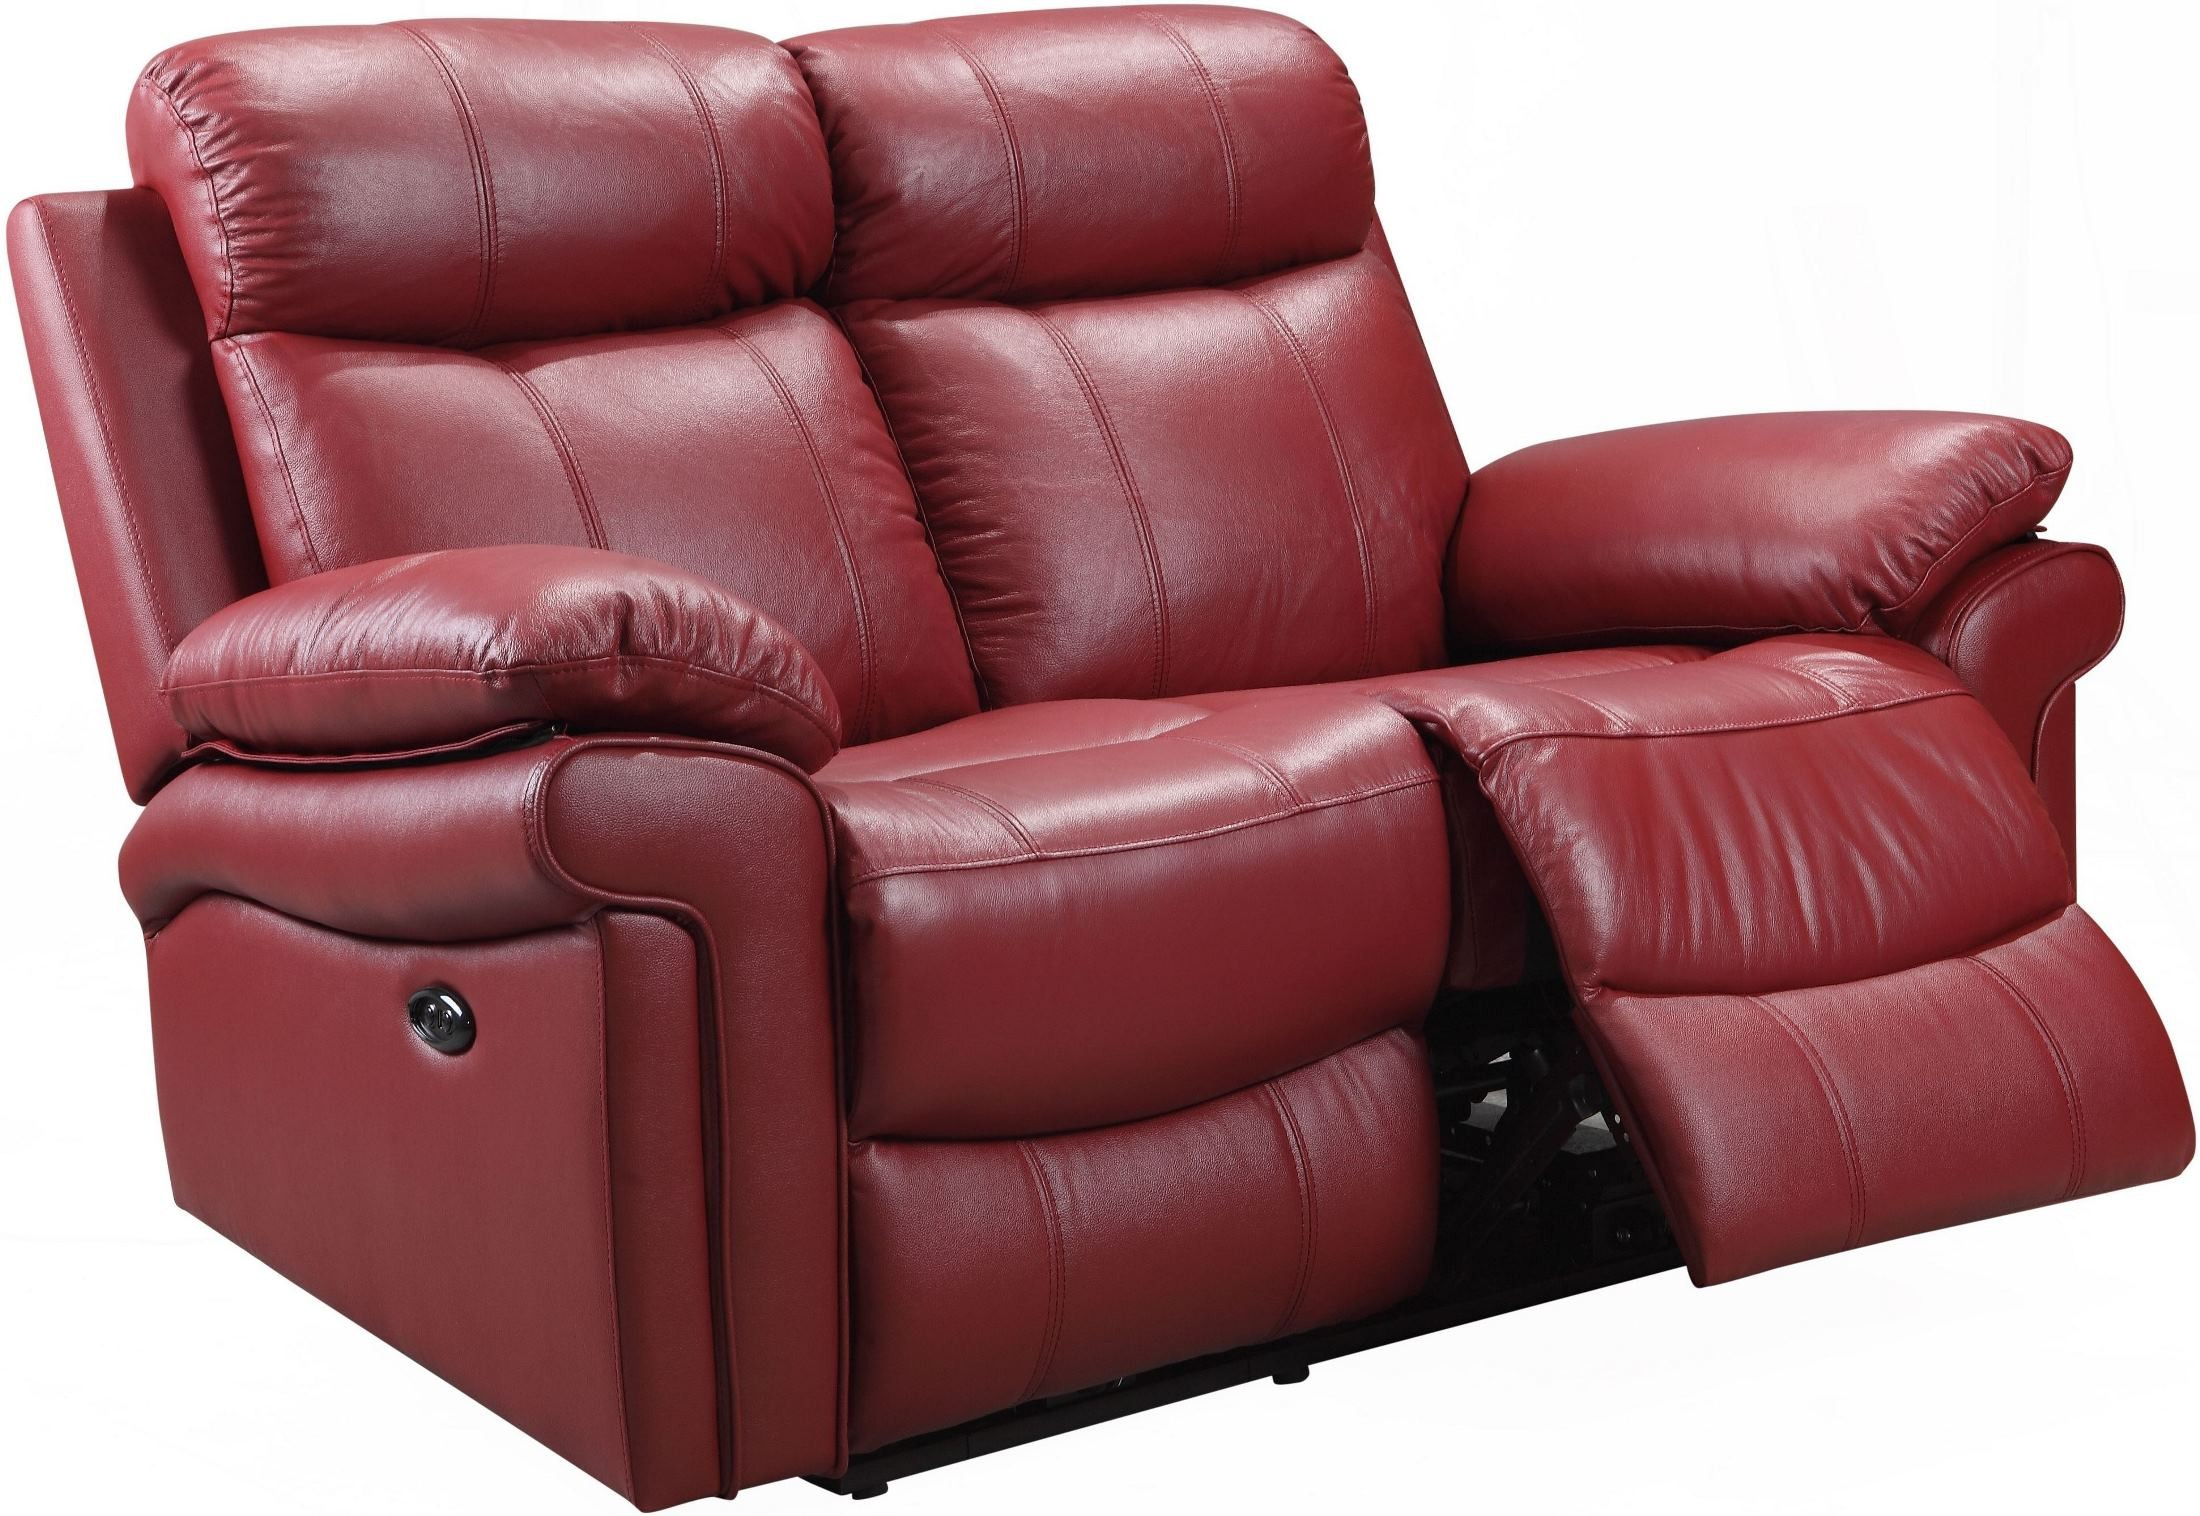 Shae Joplin Red Leather Power Reclining Loveseat 1555 E2117 021031lv Leather Italia